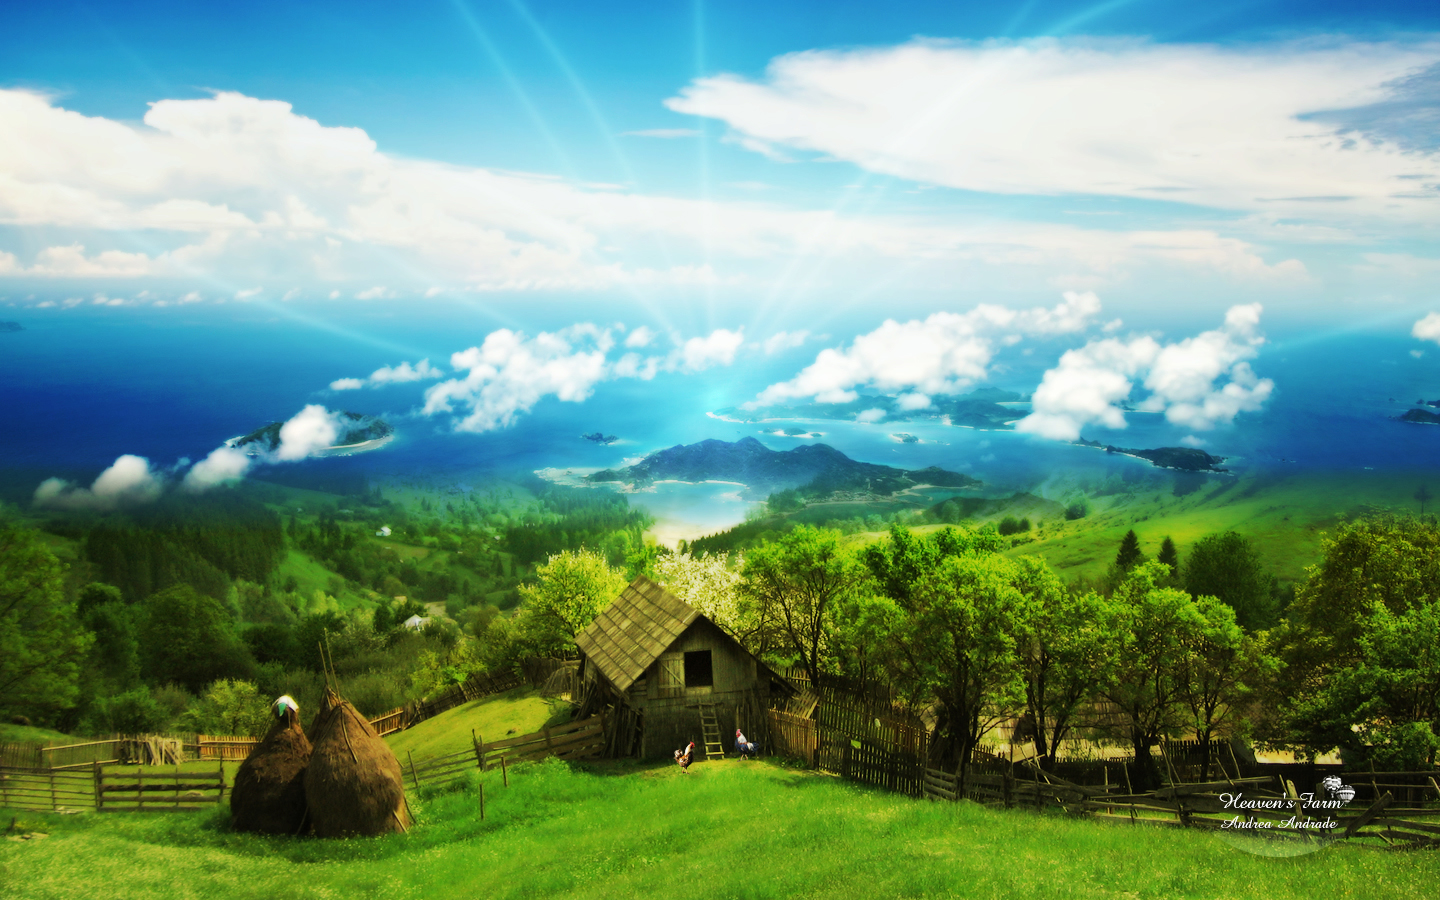 http://1.bp.blogspot.com/-dD9fdUE2mHs/T1kOeZQk9rI/AAAAAAAAATE/jUYEbpMn0n8/s1600/heavens-farm-hd-wallpaper-desktop-background.jpg